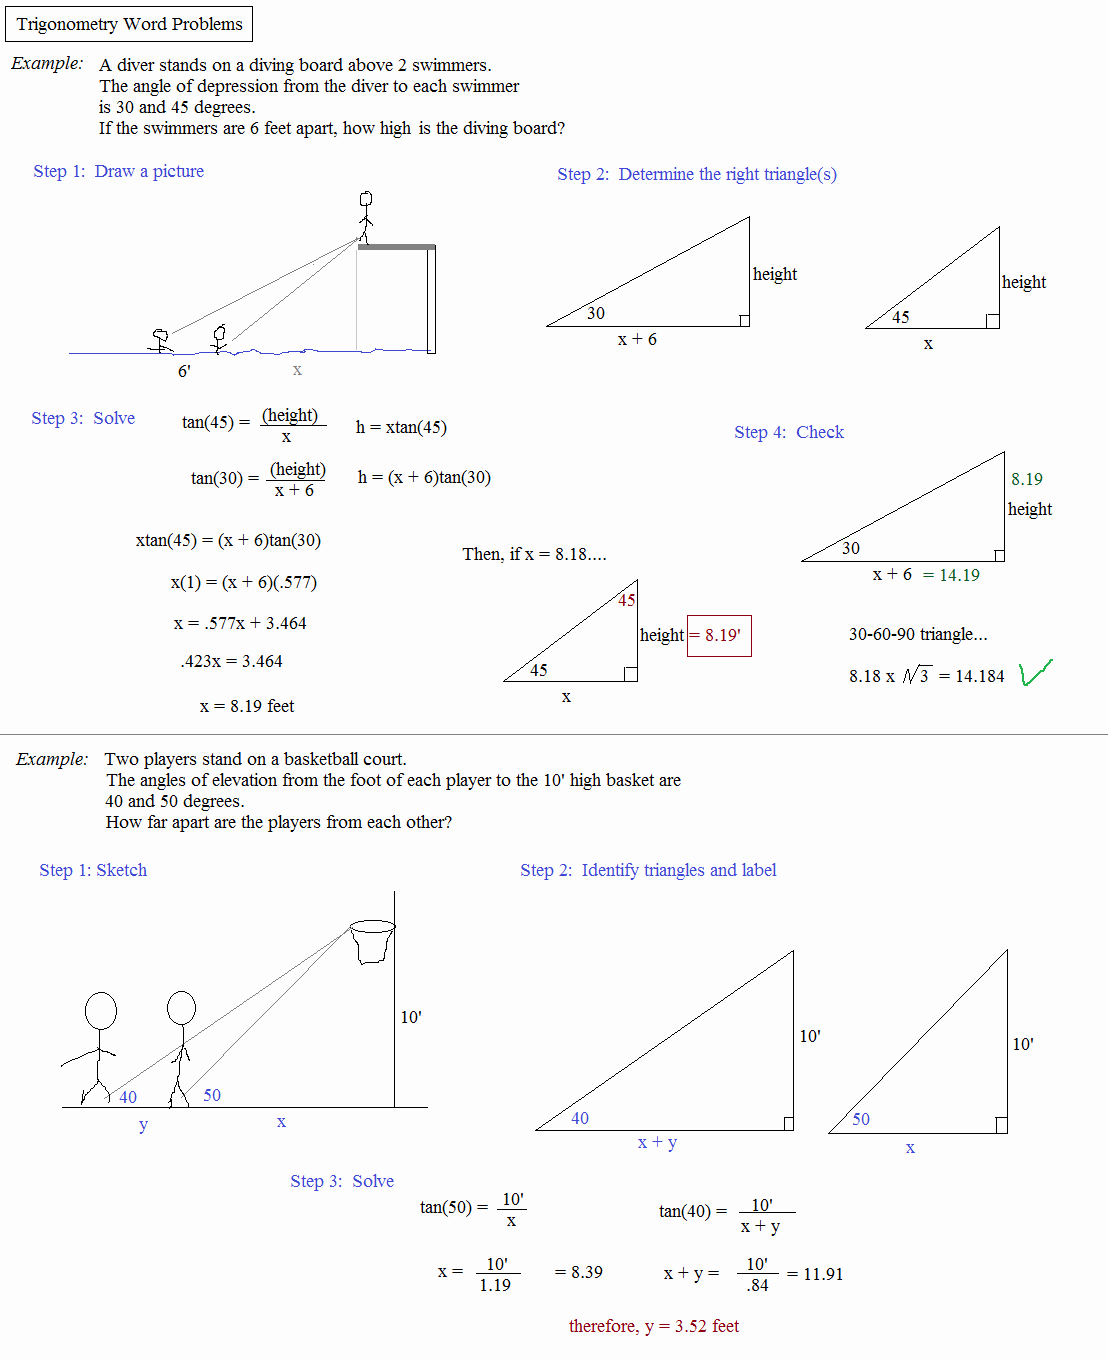 Trigonometry Word Problems Worksheet Answers Elegant Math Plane Trigonometry Word Problems